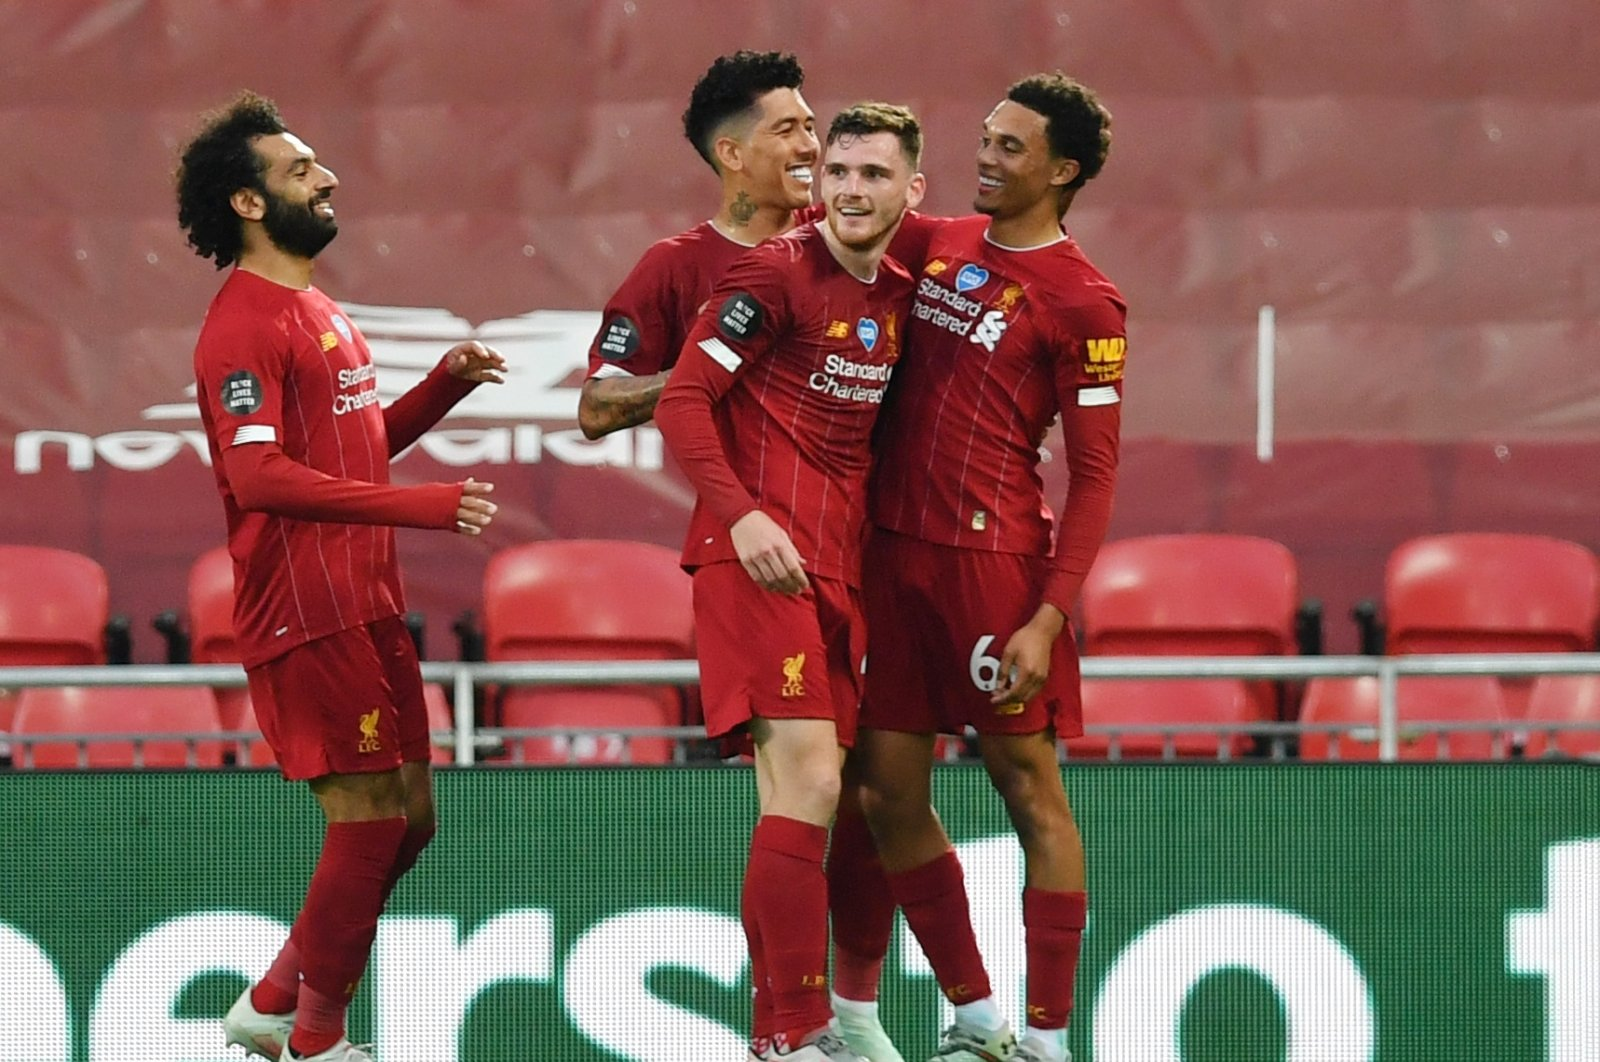 Liverpool players celebrate a goal during a Premier League match against Chelsea, in Liverpool, Britain, July 22, 2020. (Reuters Photo)